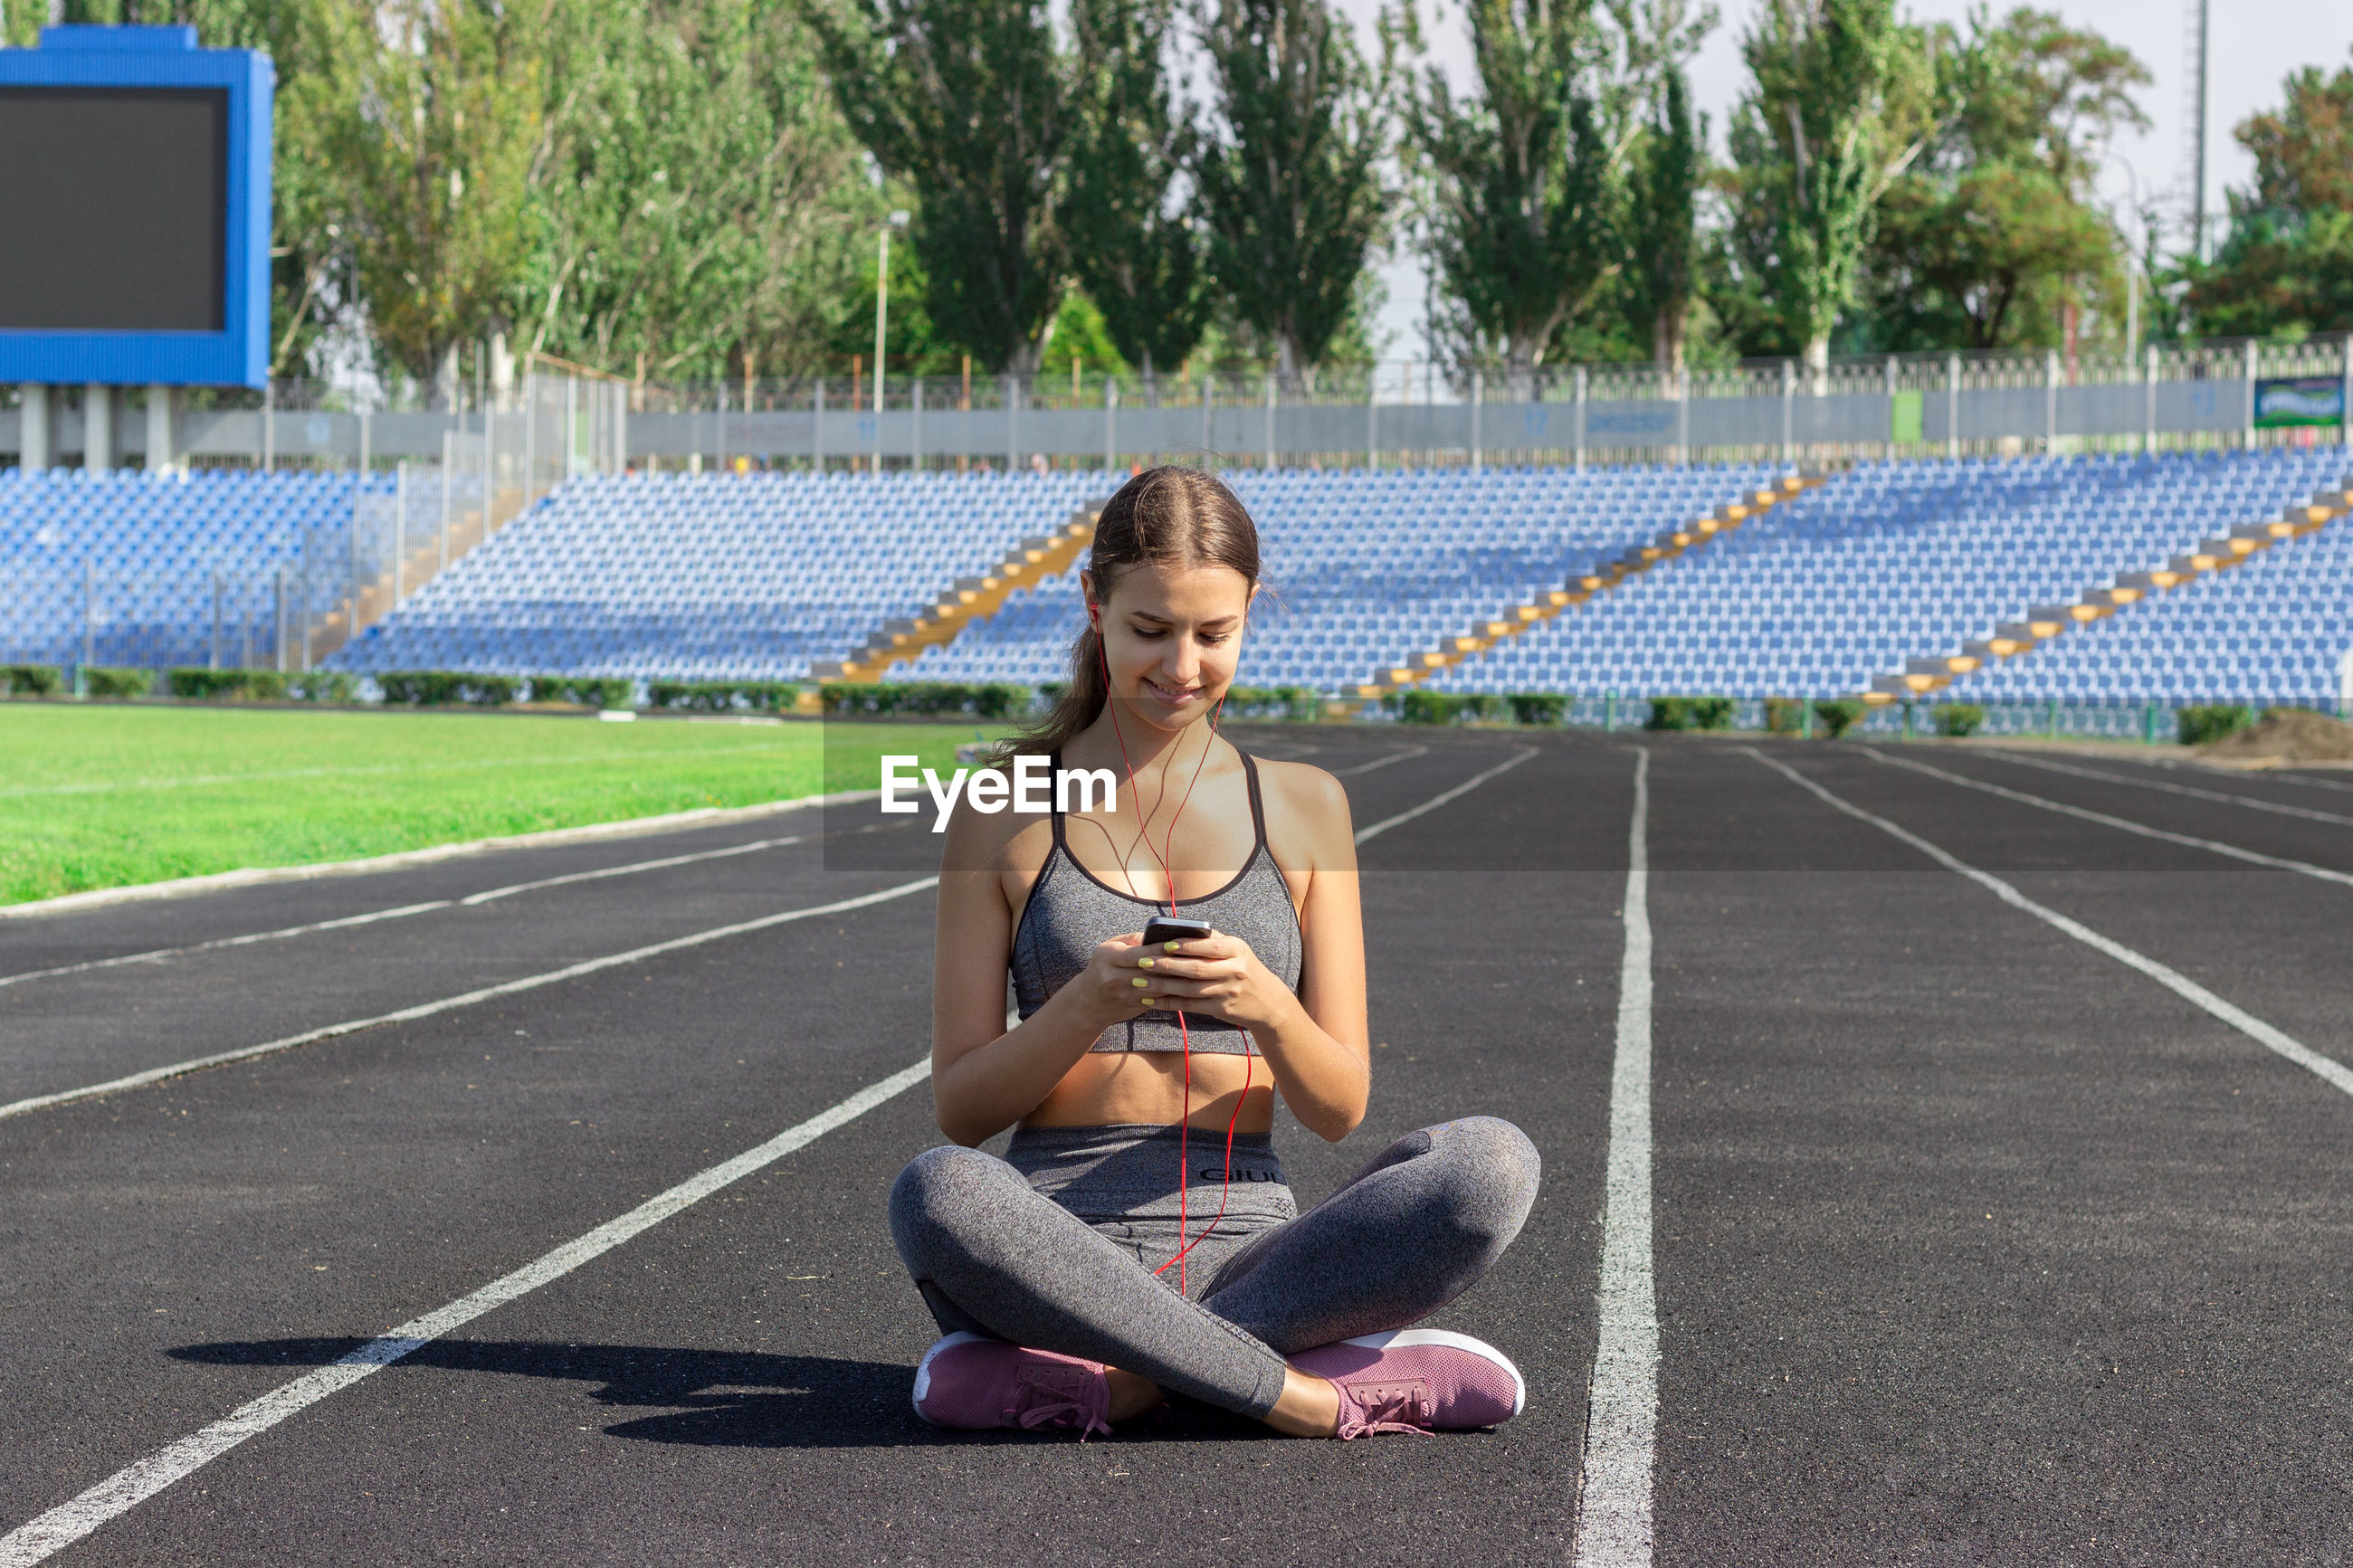 Young athlete using mobile phone while sitting on running track